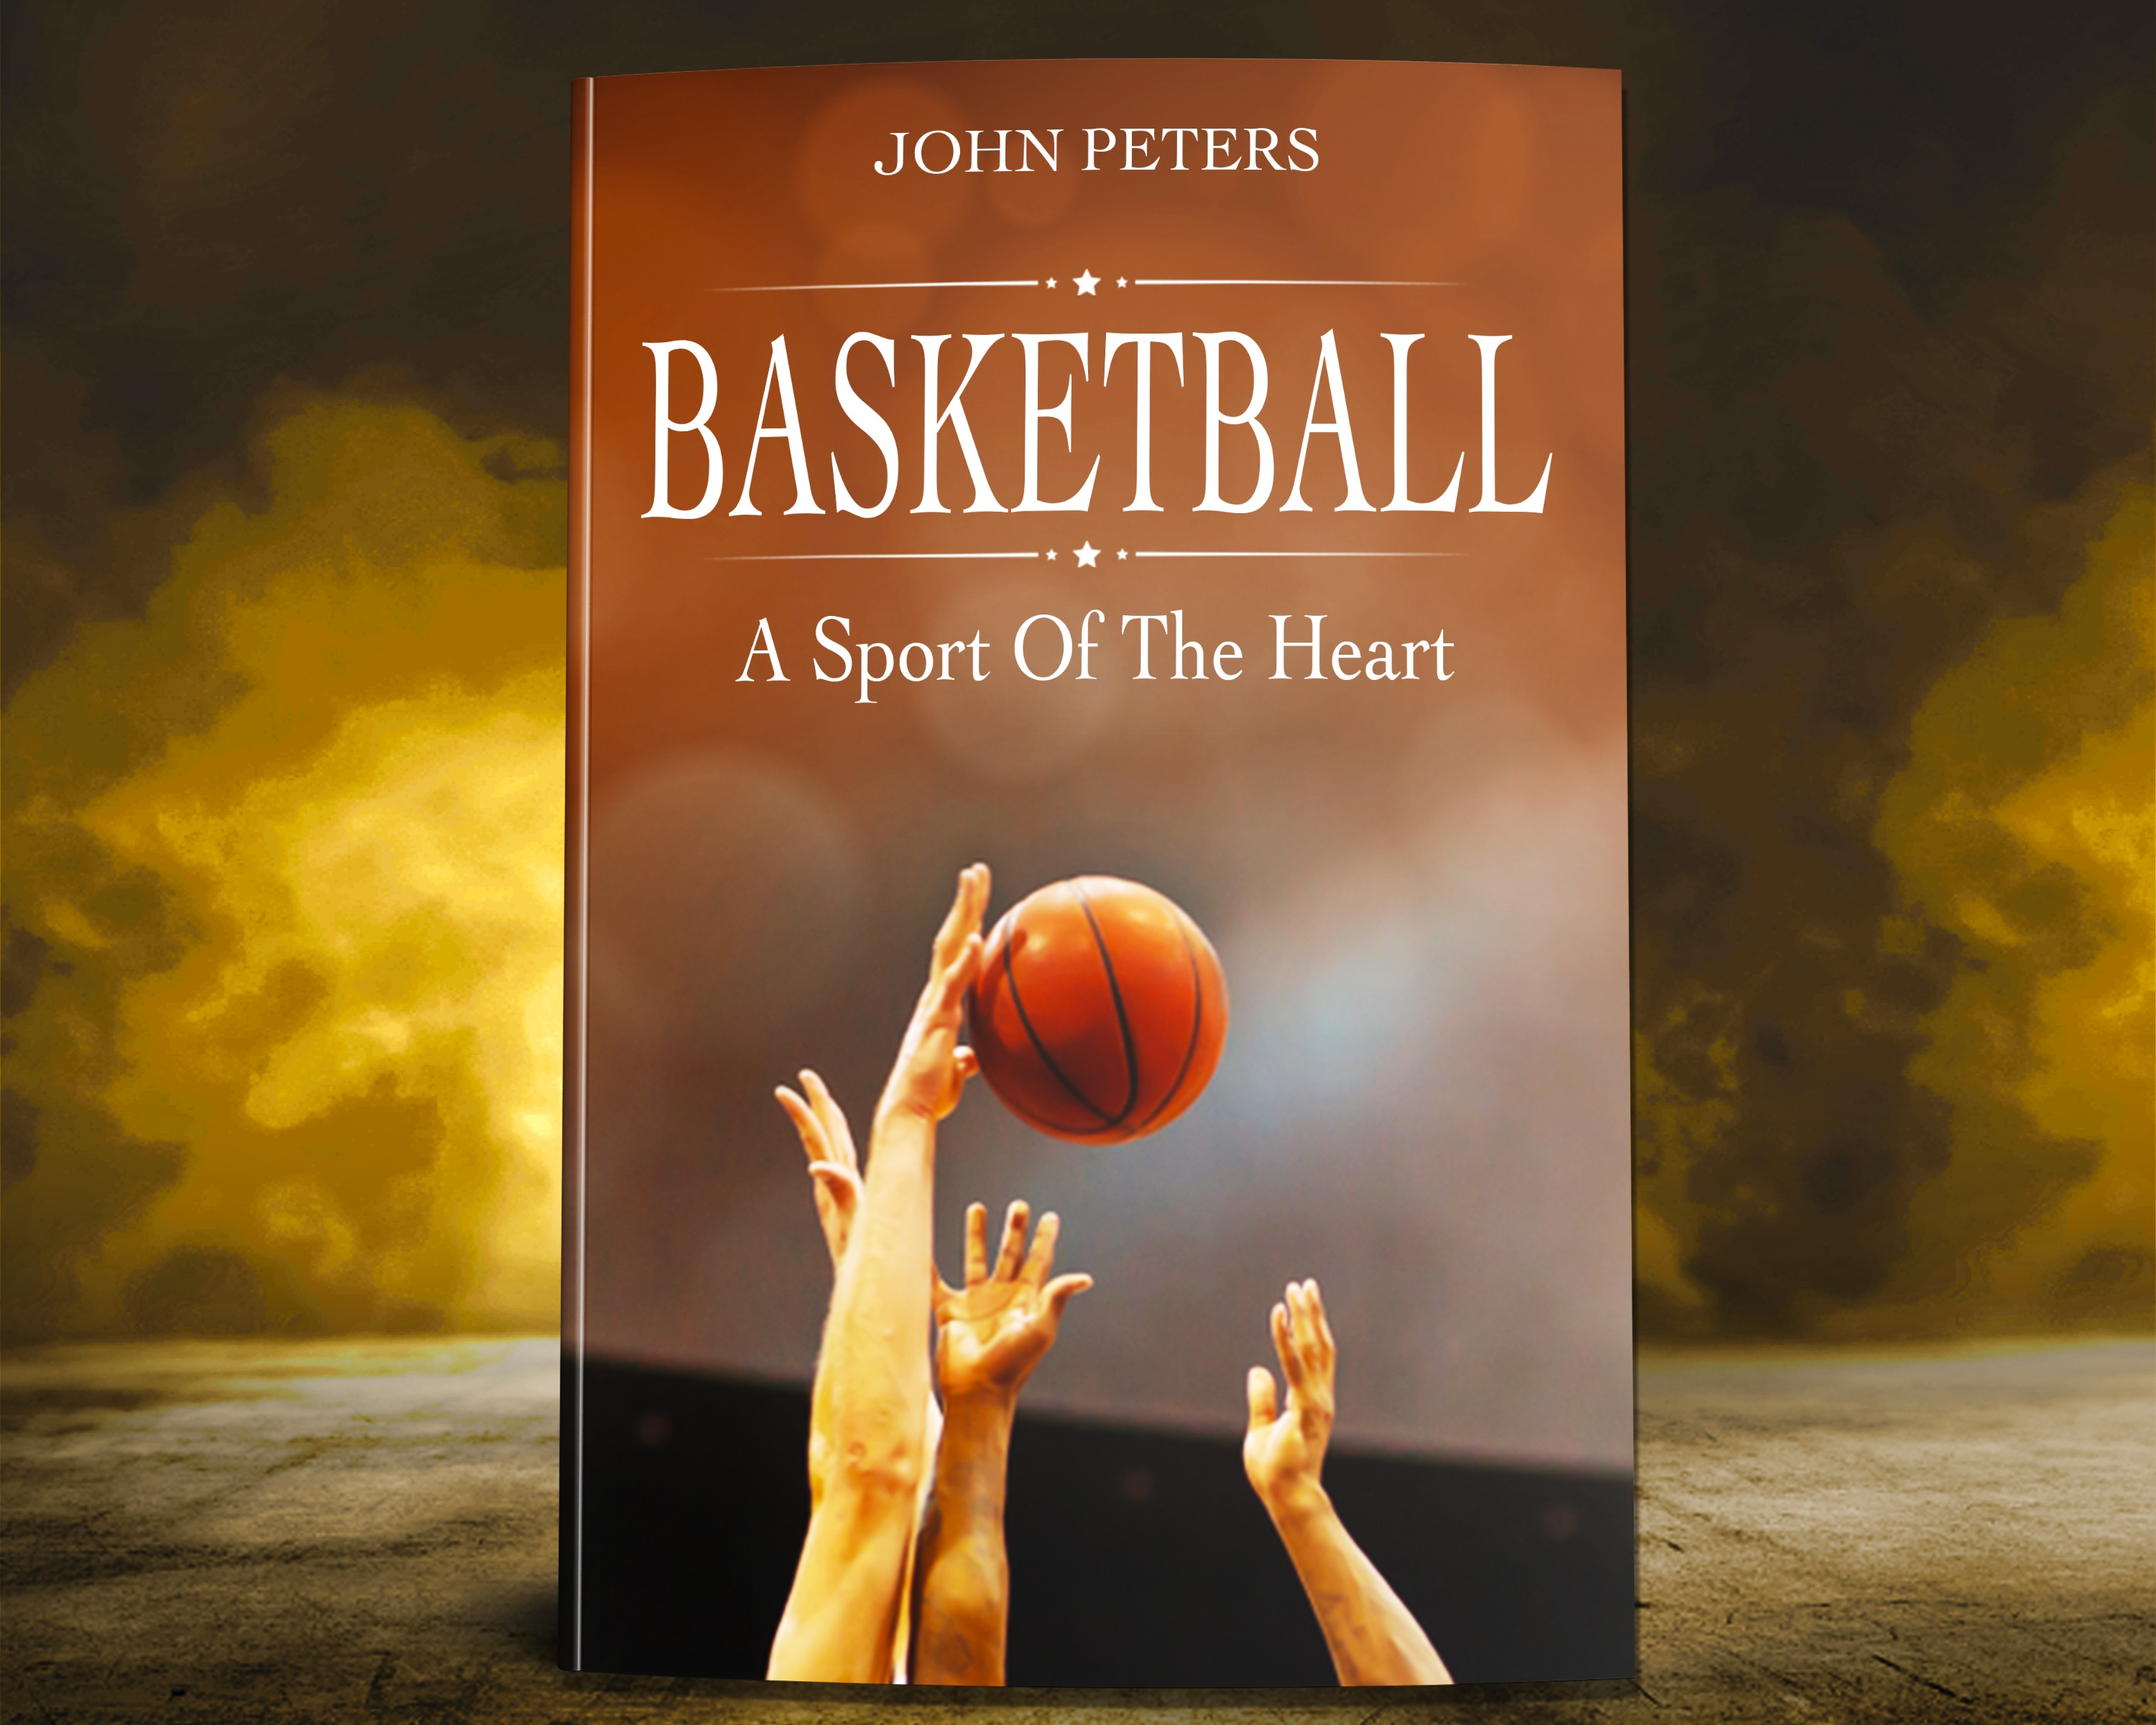 Basketball A Sport of The Heart